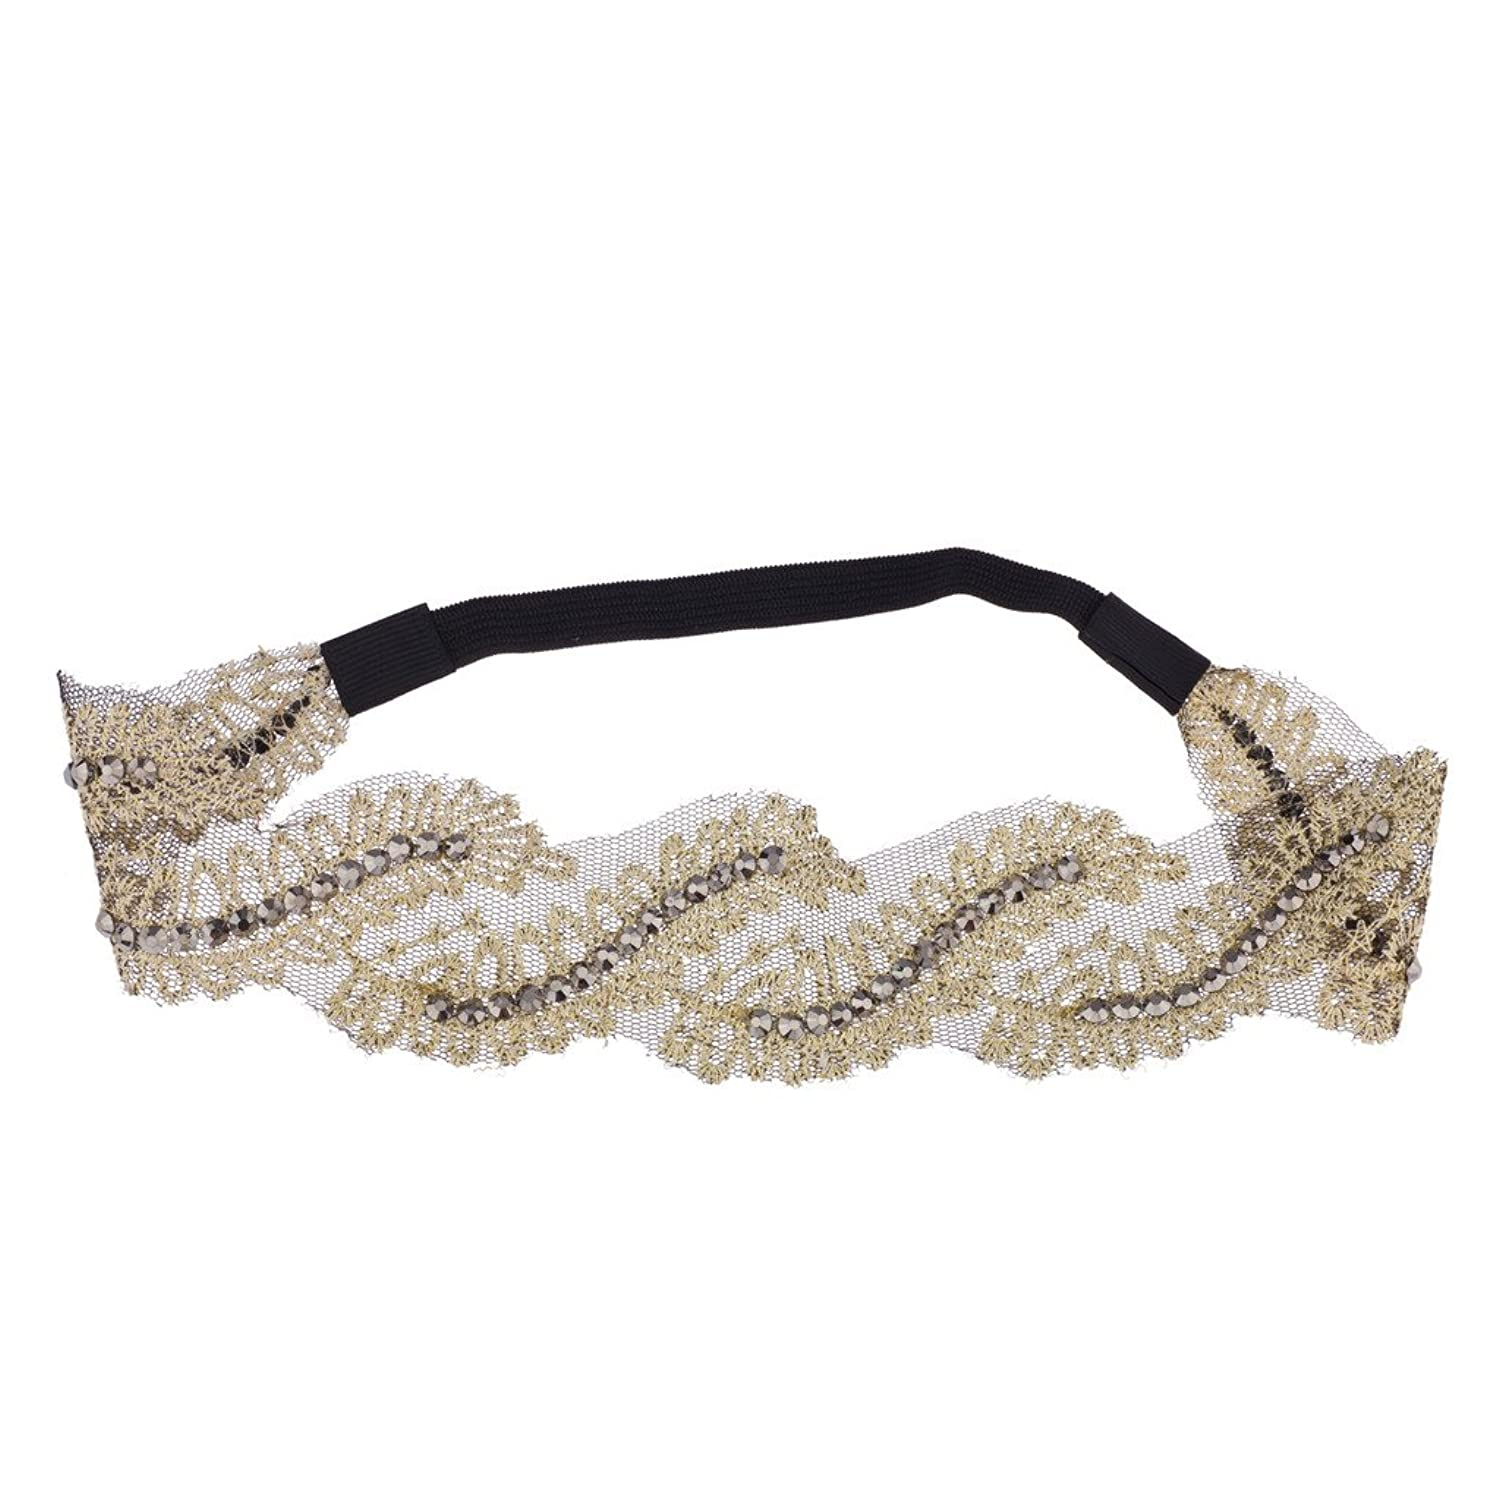 Lux Accessories Fabric Studded Leaf Floral Stretch Headband Head Band